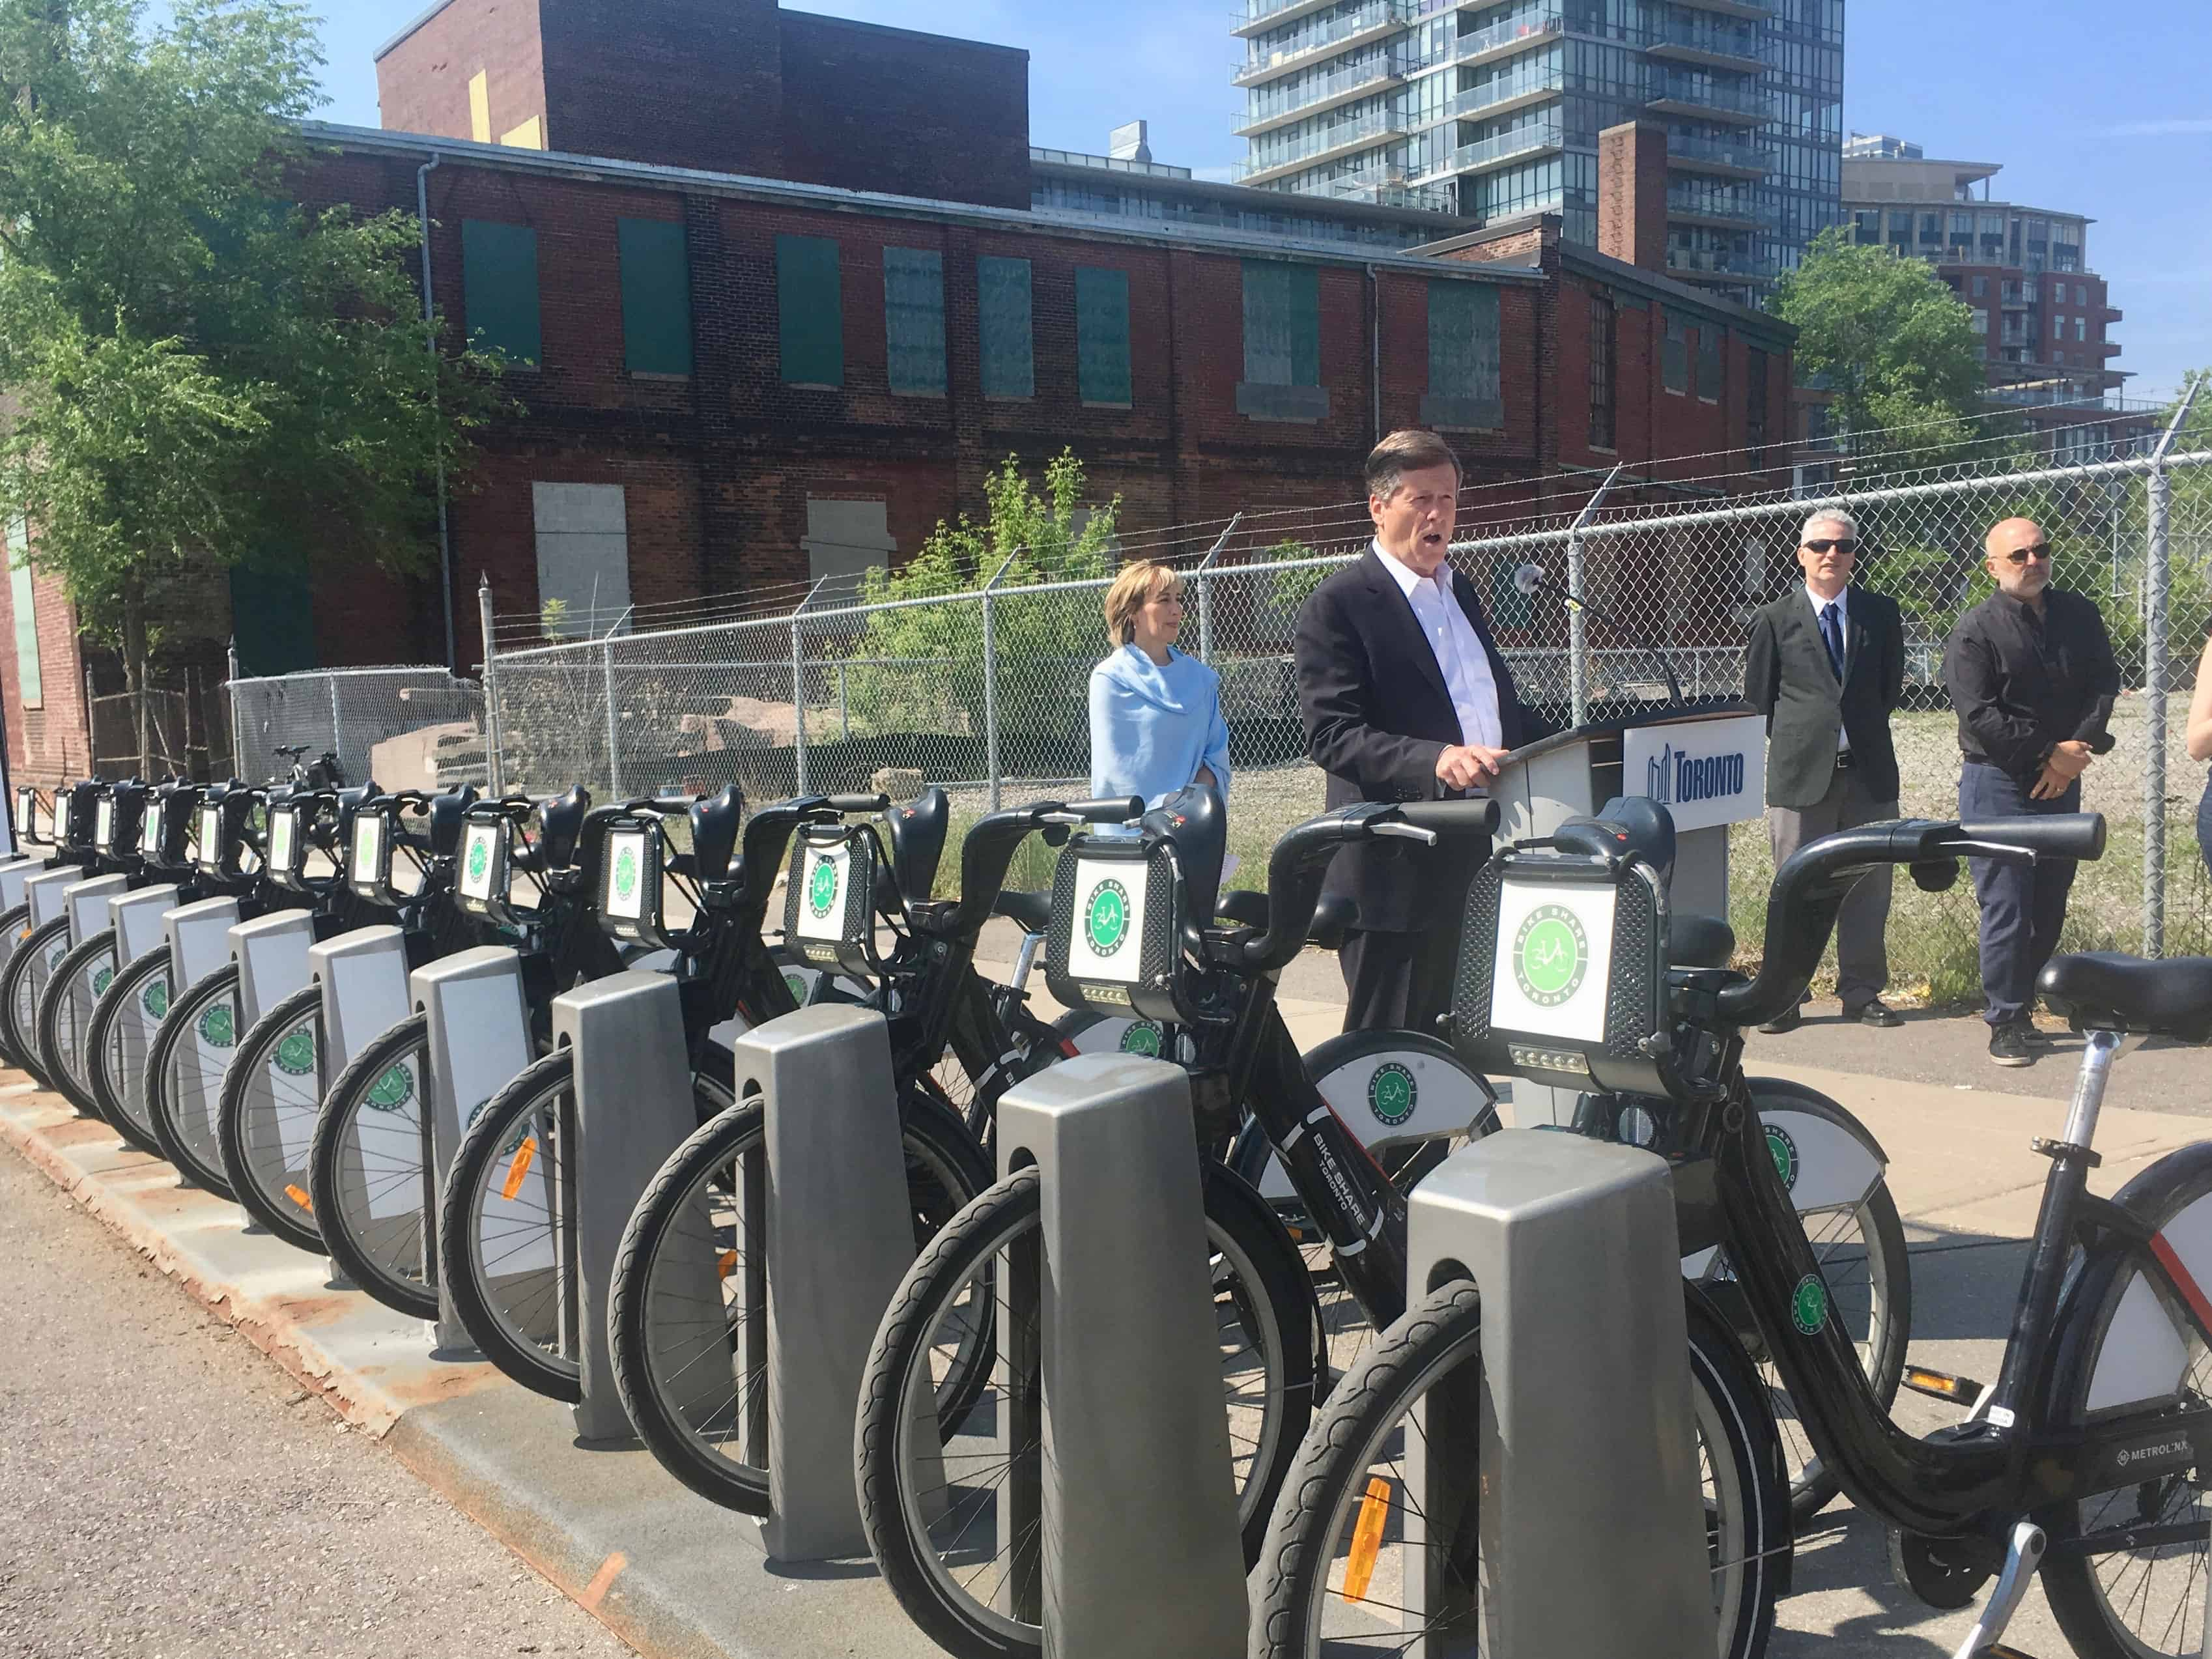 10:22 a.m., May 30, 2018. Mayor John Tory speaking at announcement for Bike Share free half-hour rides on Wednesdays in June. Rhonda English, Chief Marketing Officer at CAA, looks on.